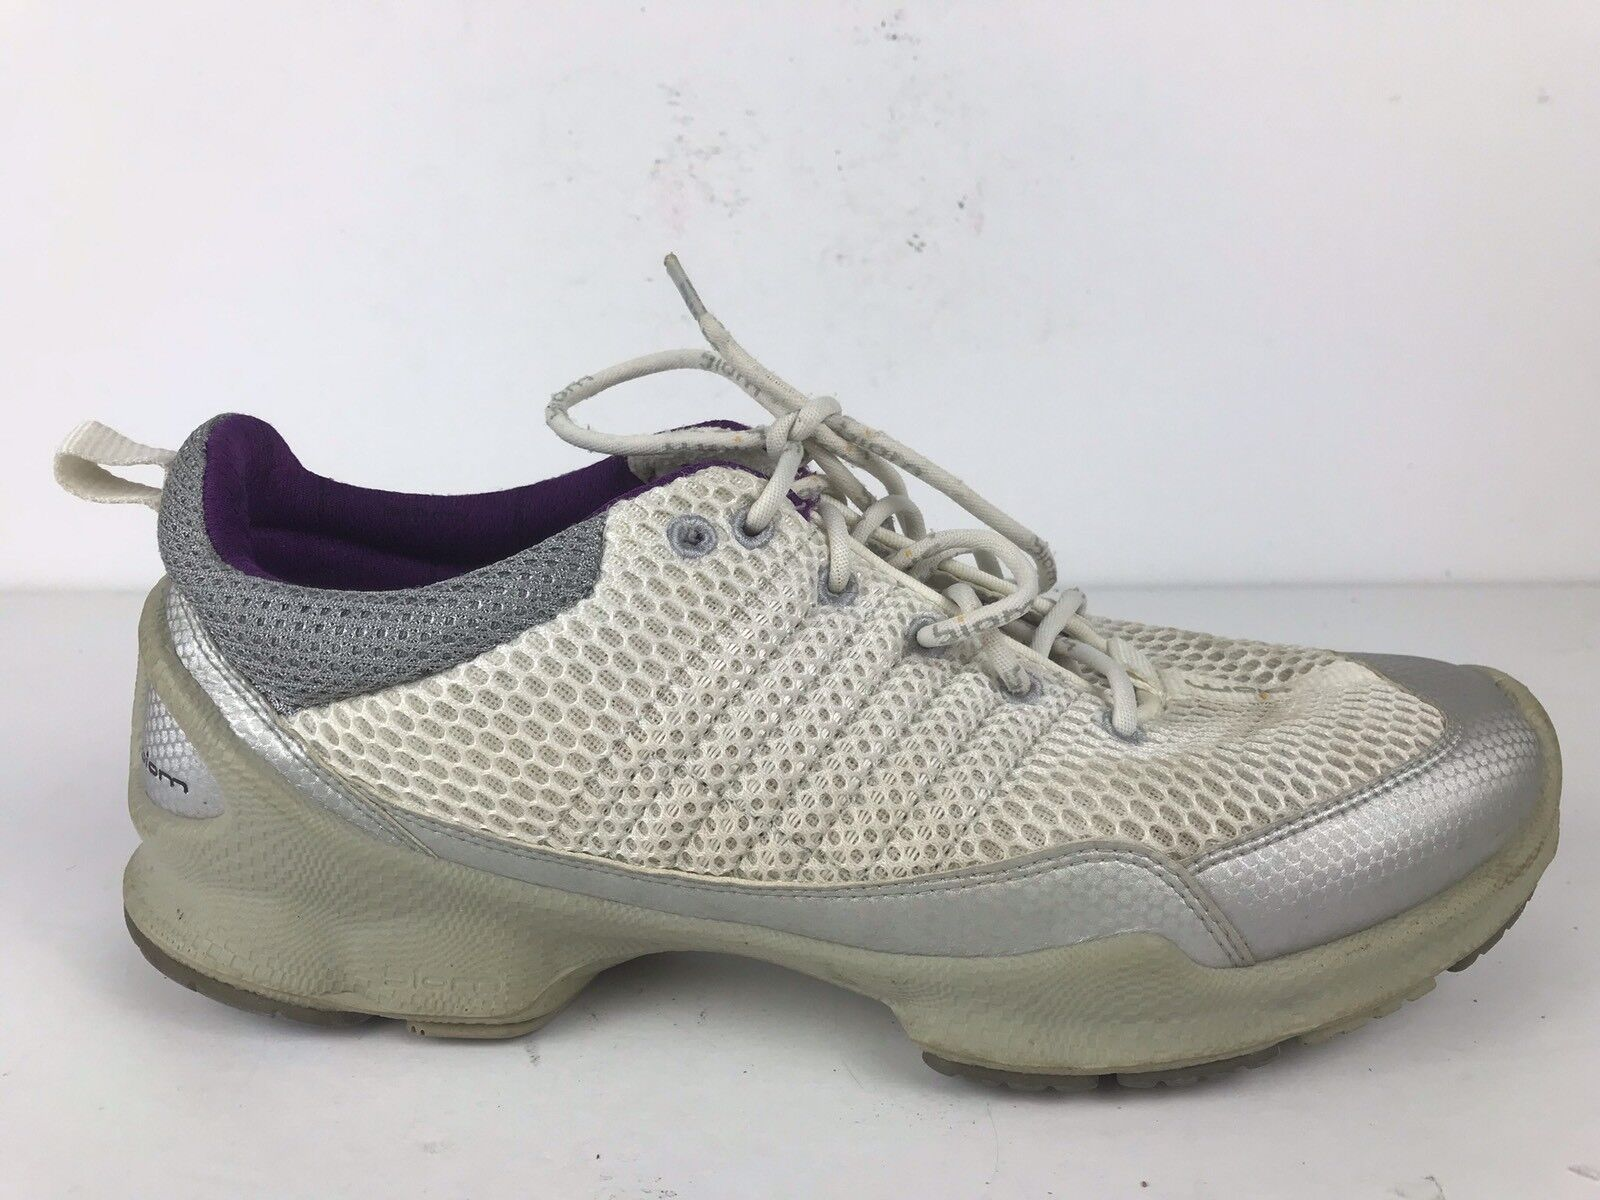 Ecco Biom Train Natural Motion Women's Sneaker Running shoes Sz US 10-10.5